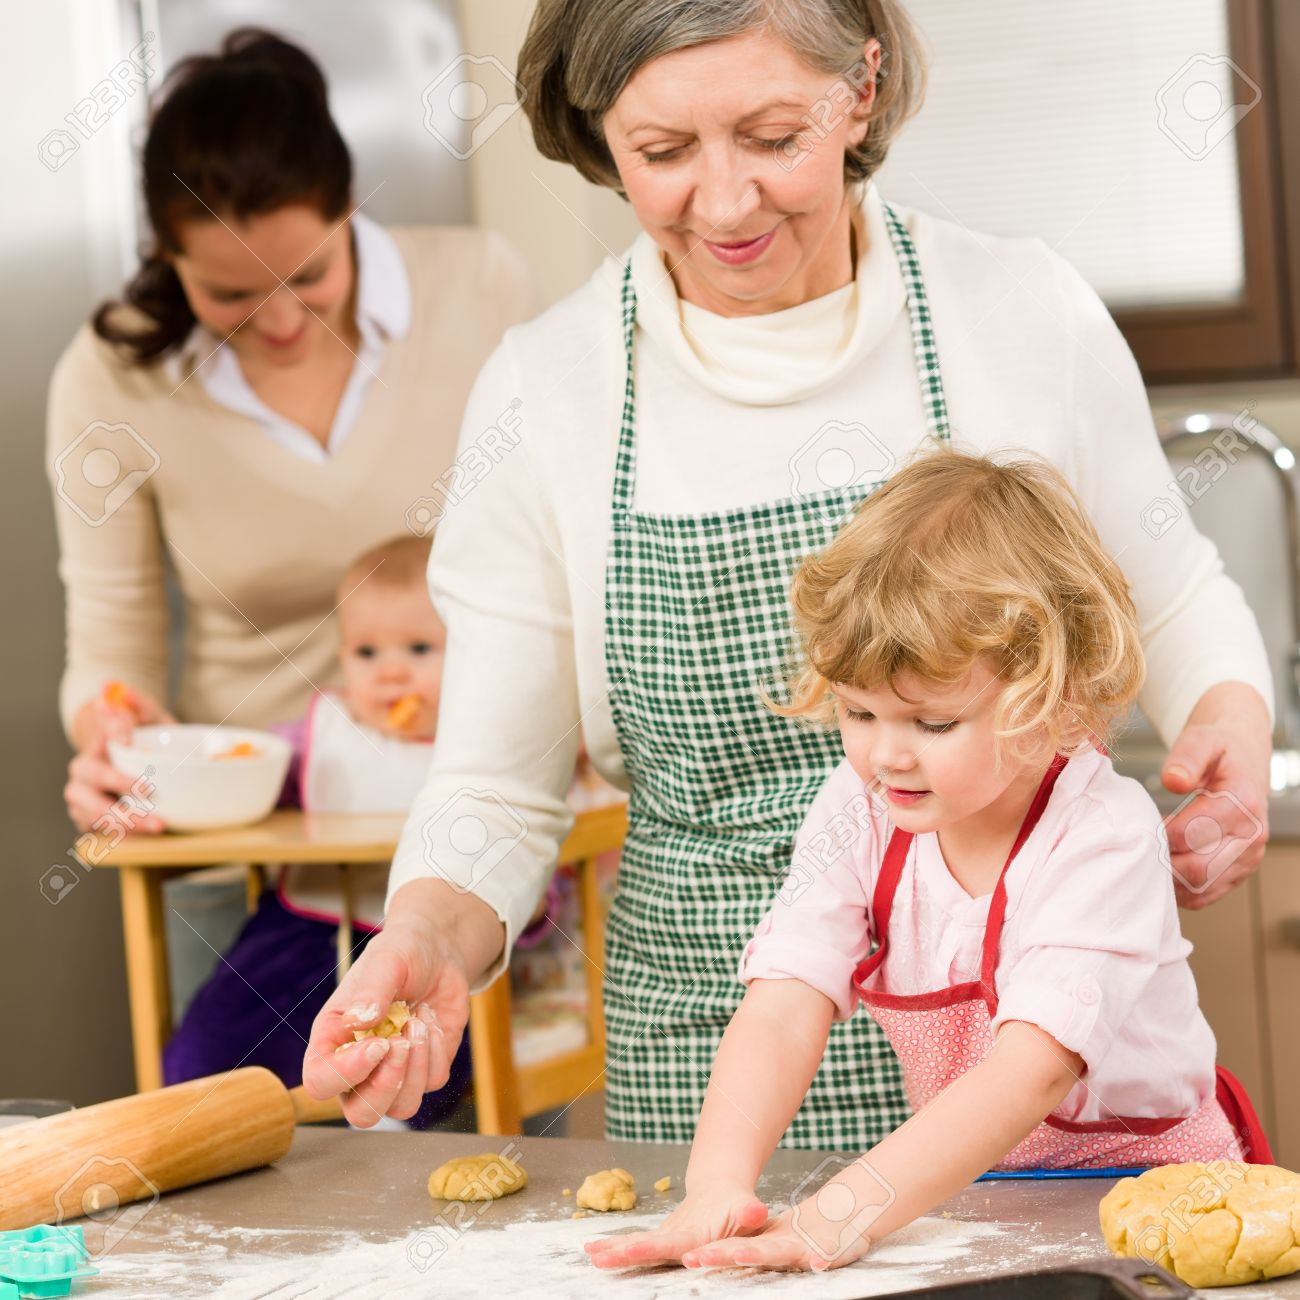 Grandmother with little girl prepare dough for baking in kitchen Stock Photo - 12757931